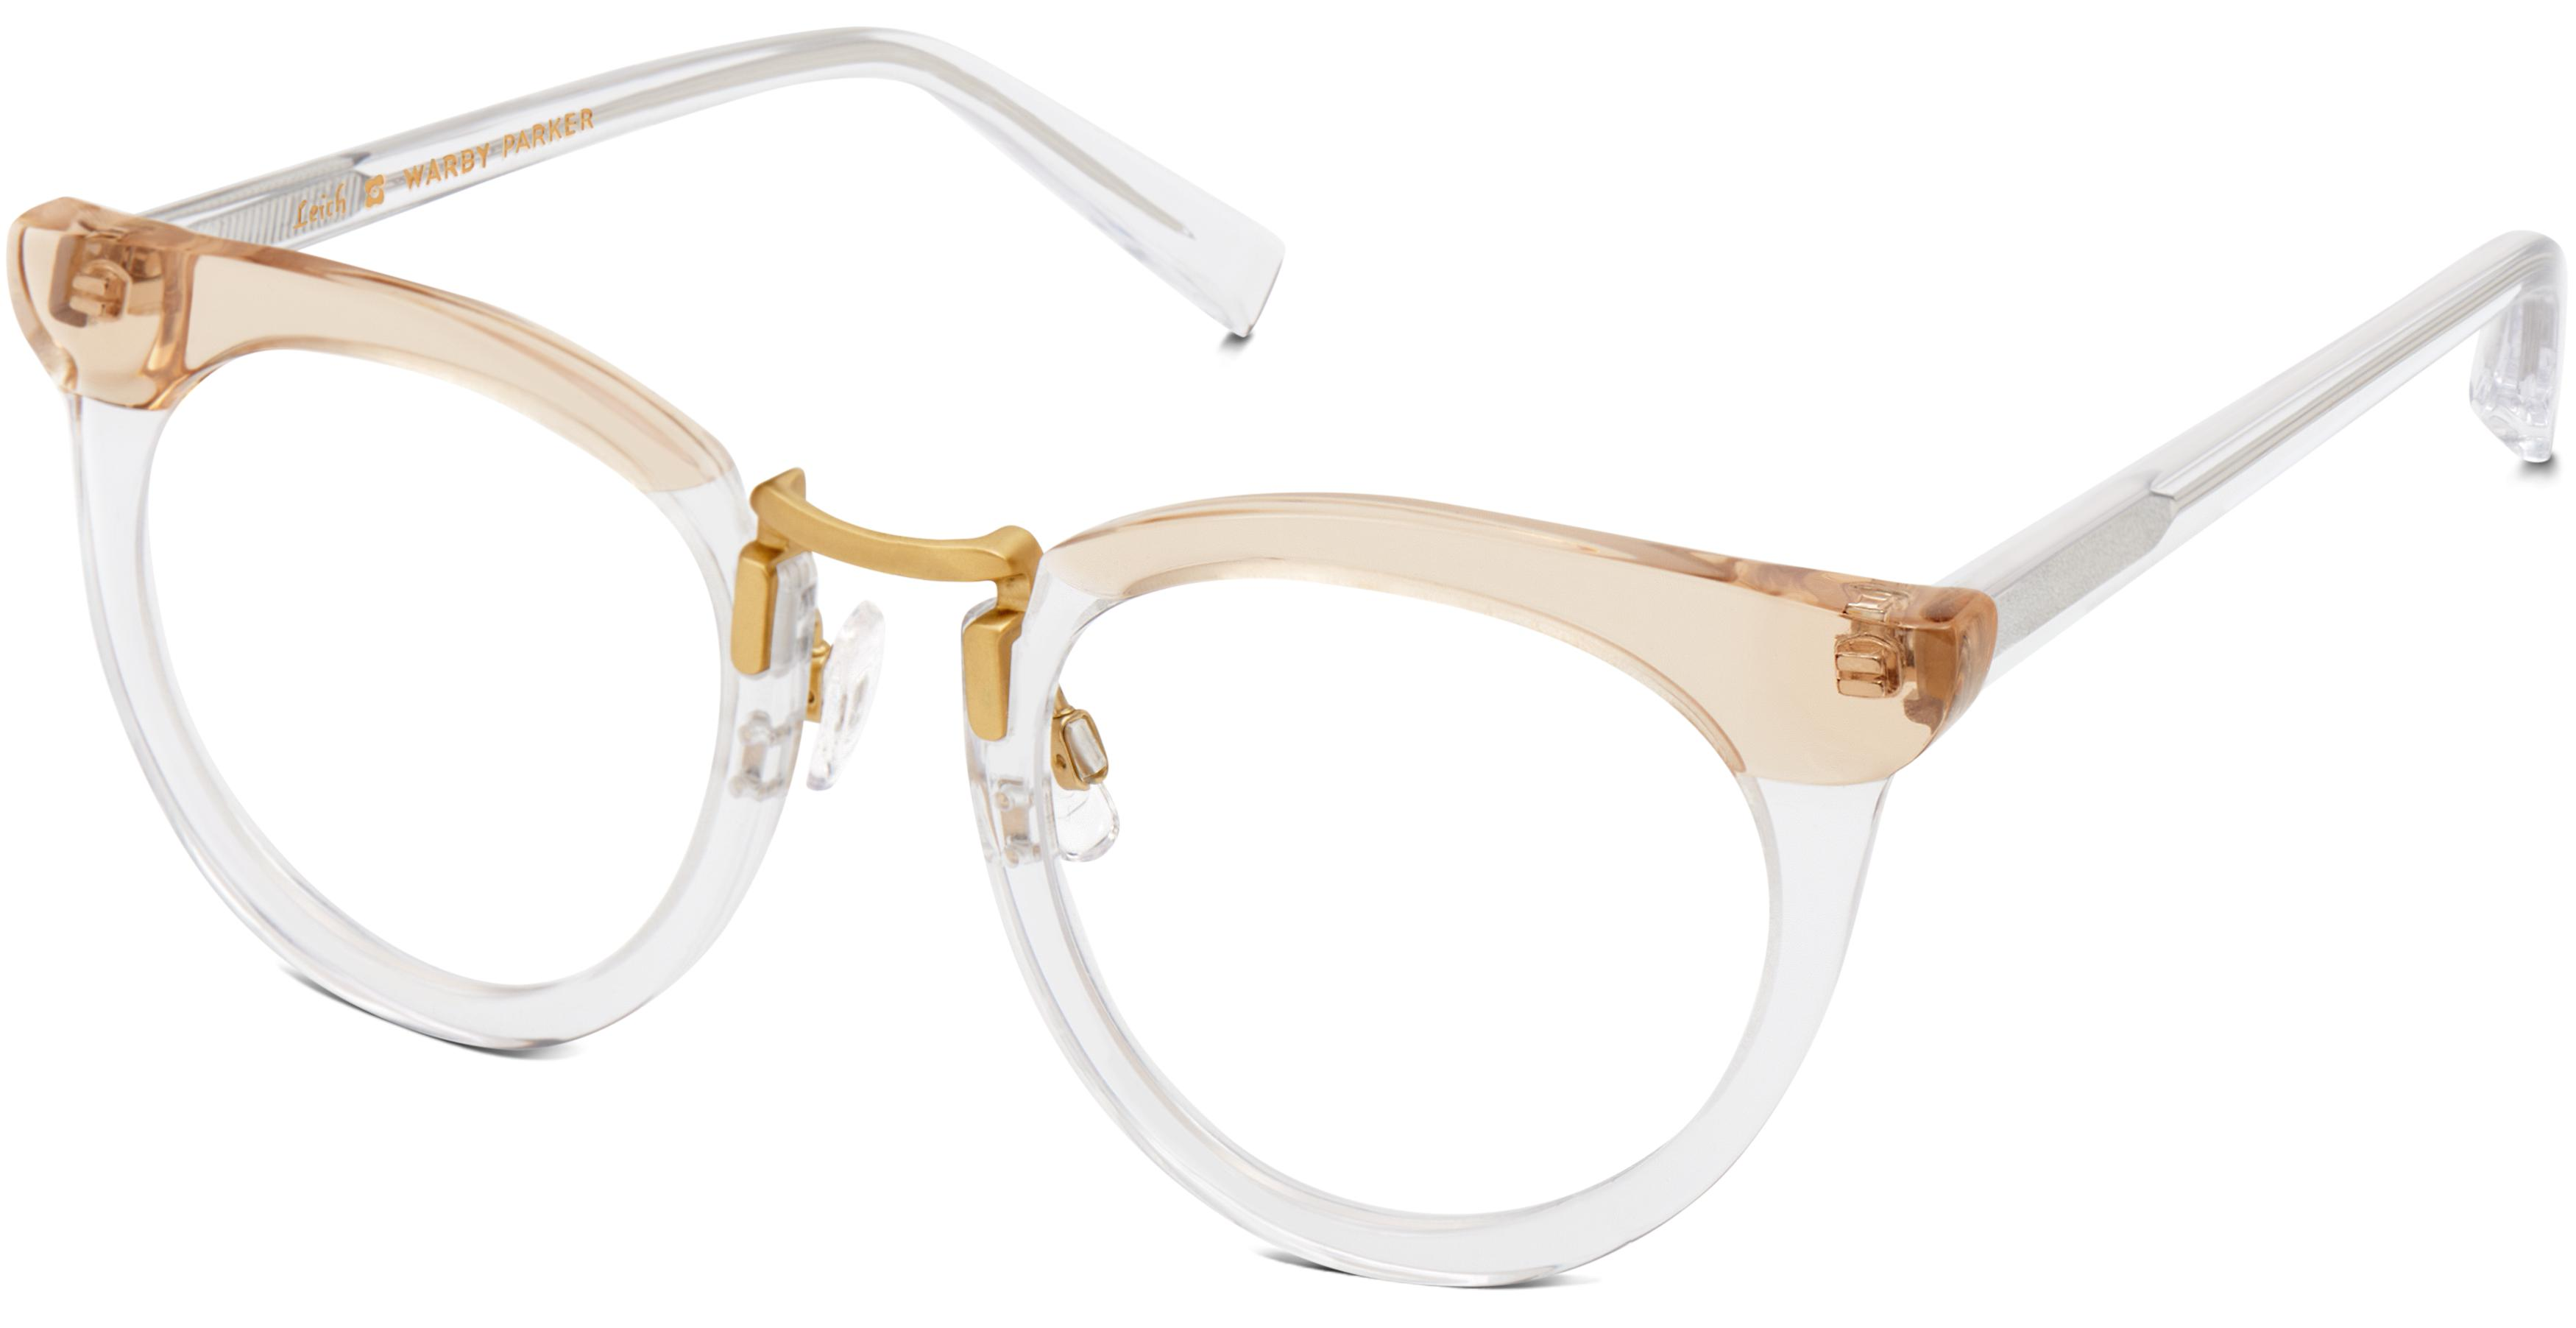 From our collaboration with Leith Clark comes Zelda, a two-tone cat-eye silhouette with a Polished Gold square bridge. Simple yet utterly distinct.